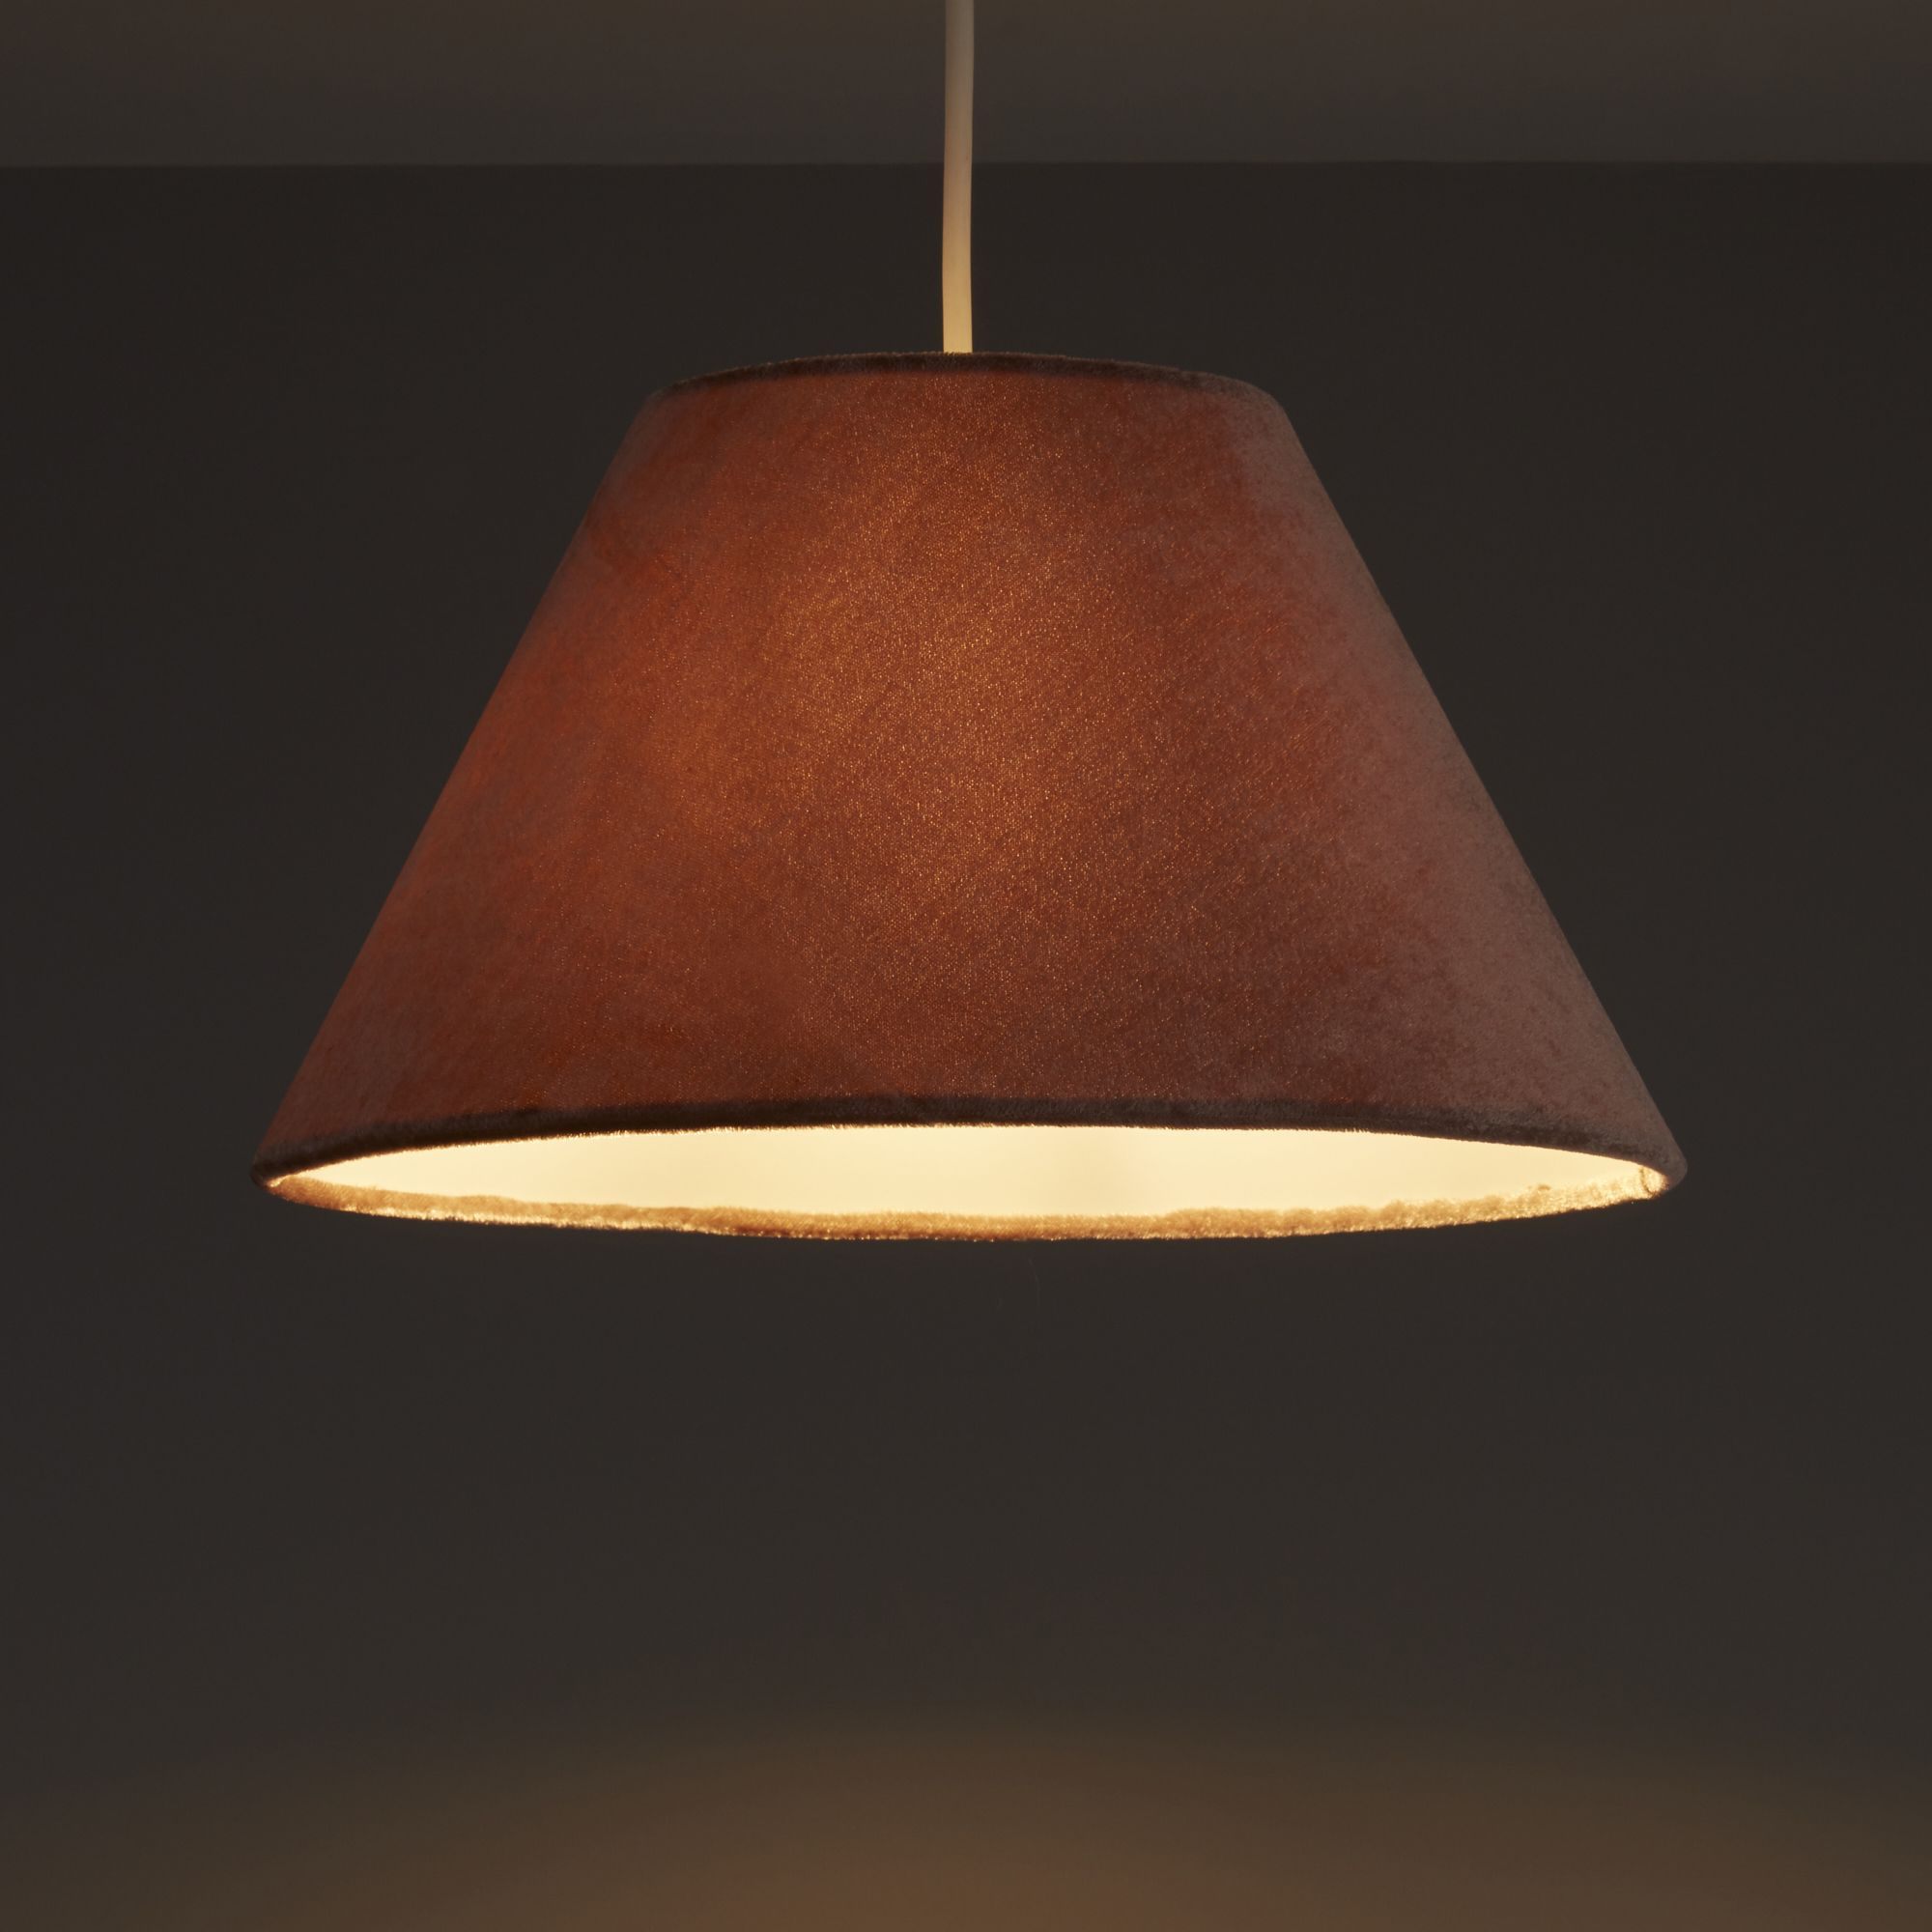 Diy at bq colours clain brown velvet light shade d310mm mozeypictures Image collections